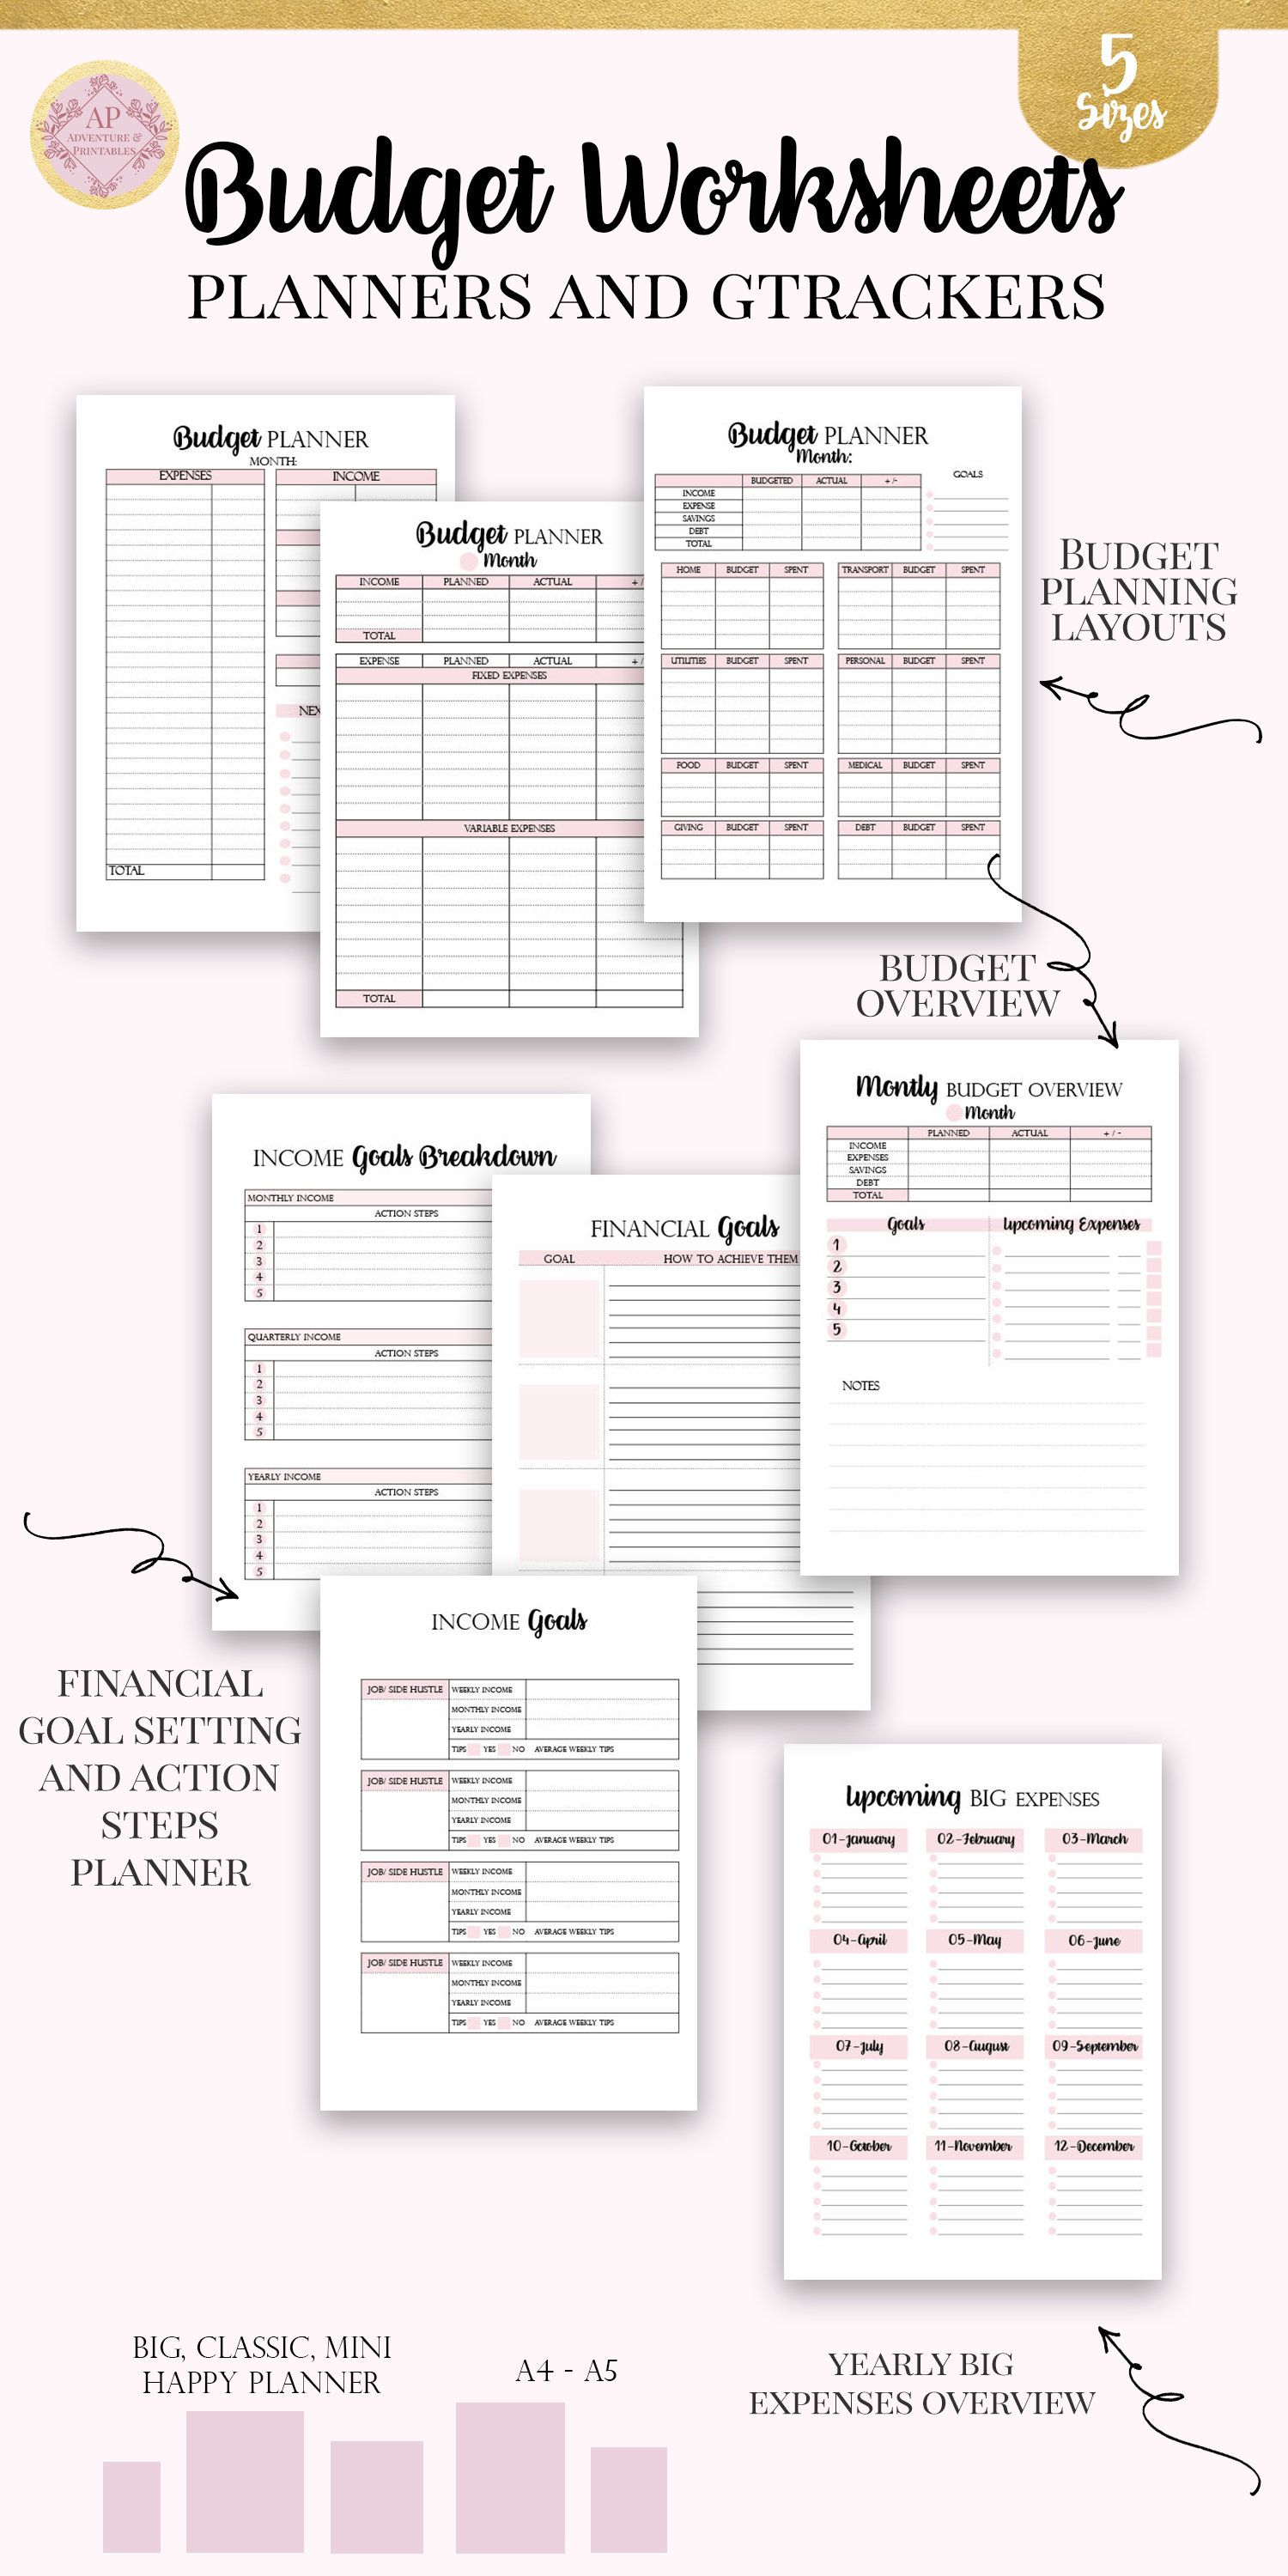 Personal Finance Happy Planner Printable Insert Finance